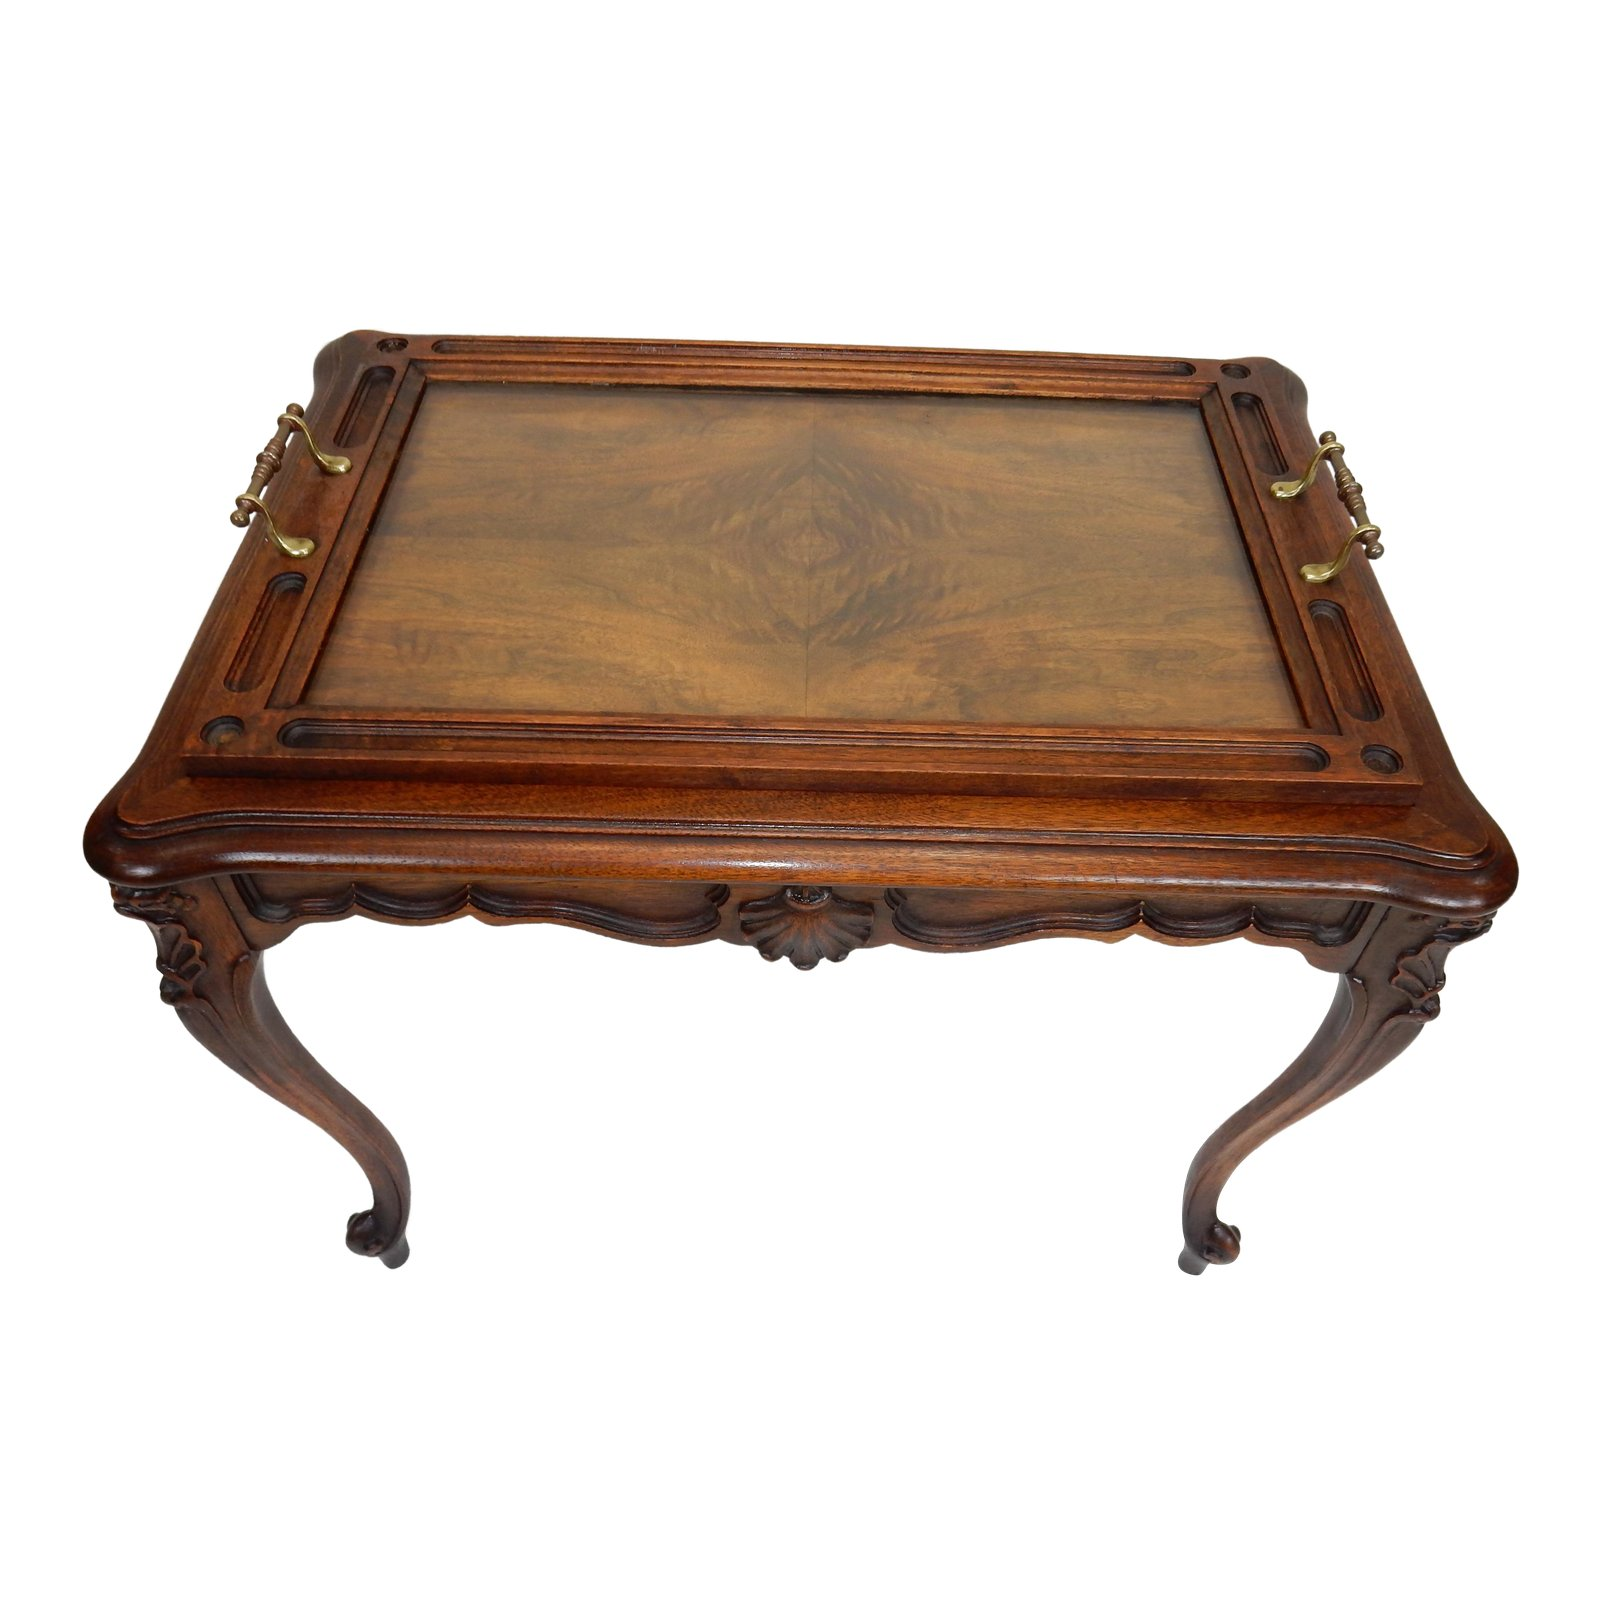 intricately carved walnut french rocco serving table with removable tray accent chairish wicker side glass top antique oak coffee plastic folding high end cocktail tables vintage